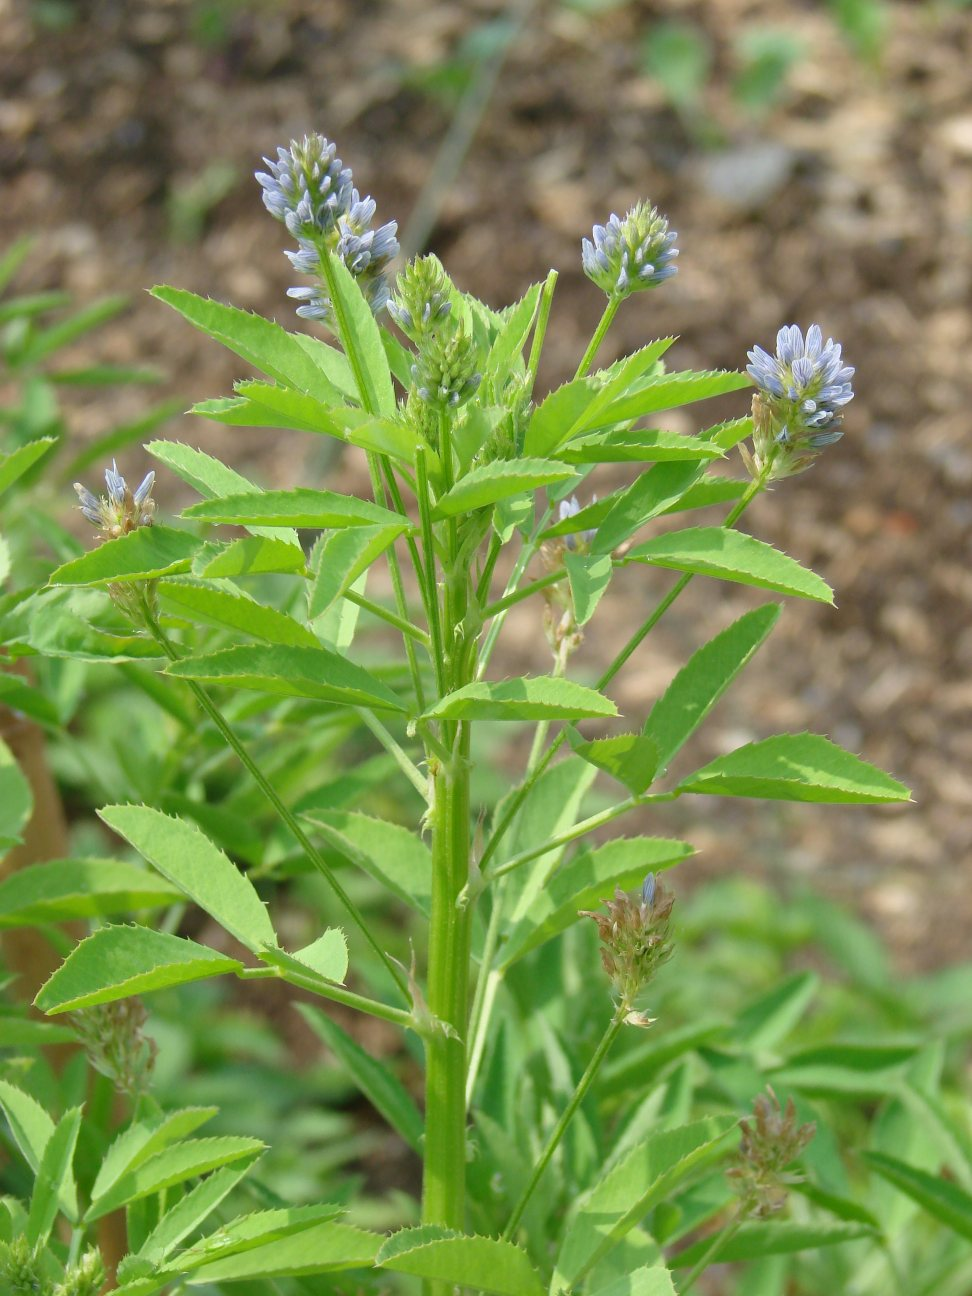 Blue fenugreek. (Photo by Flyout via Wikimedia Commons.)